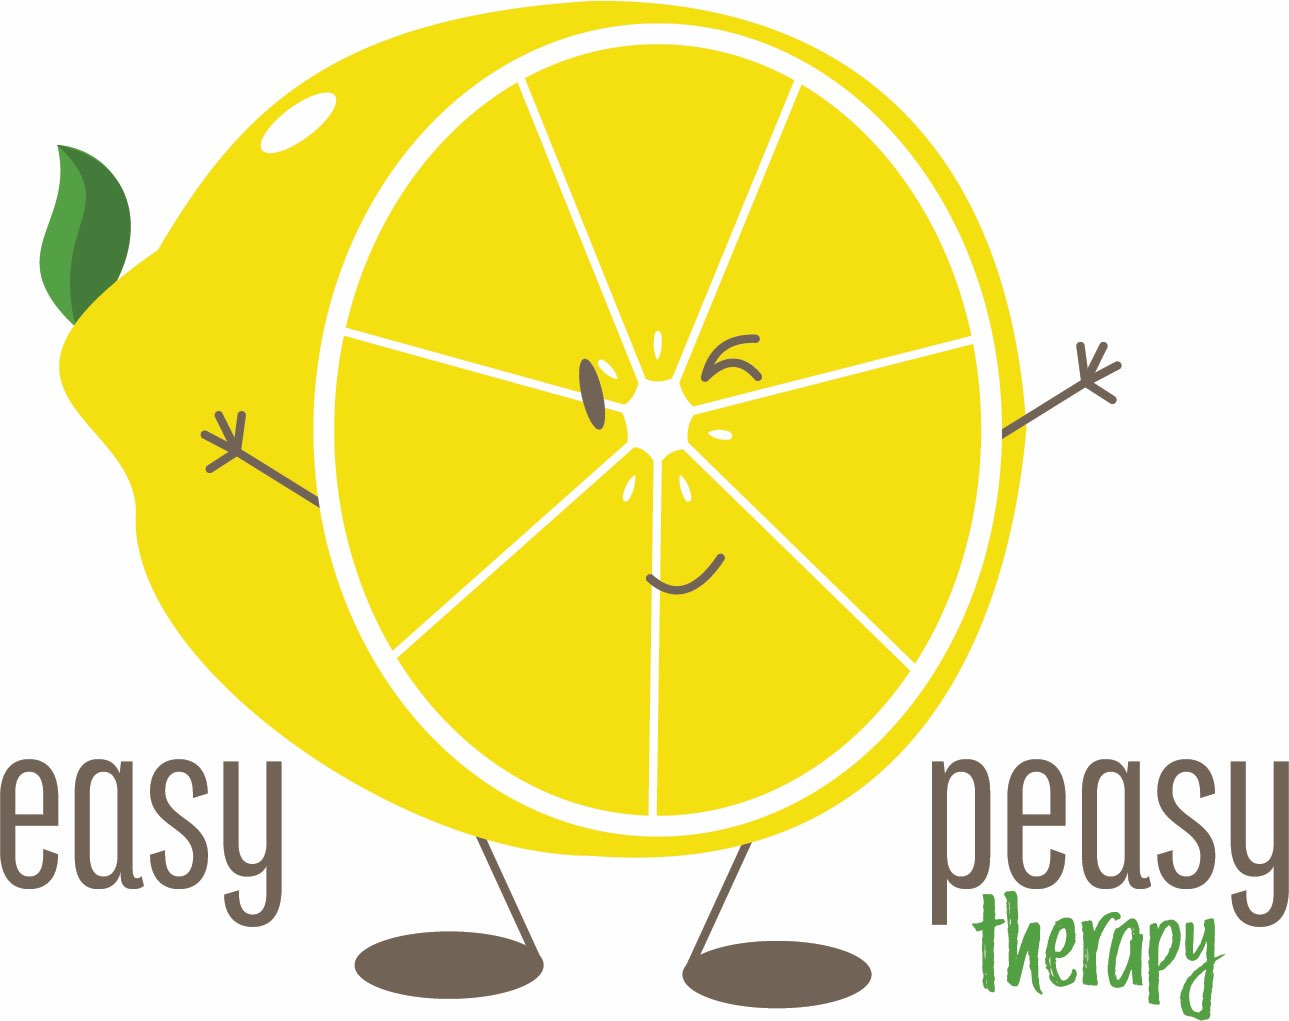 Easy Peasy Therapy: Special Needs Therapeutic Potty Training Logo